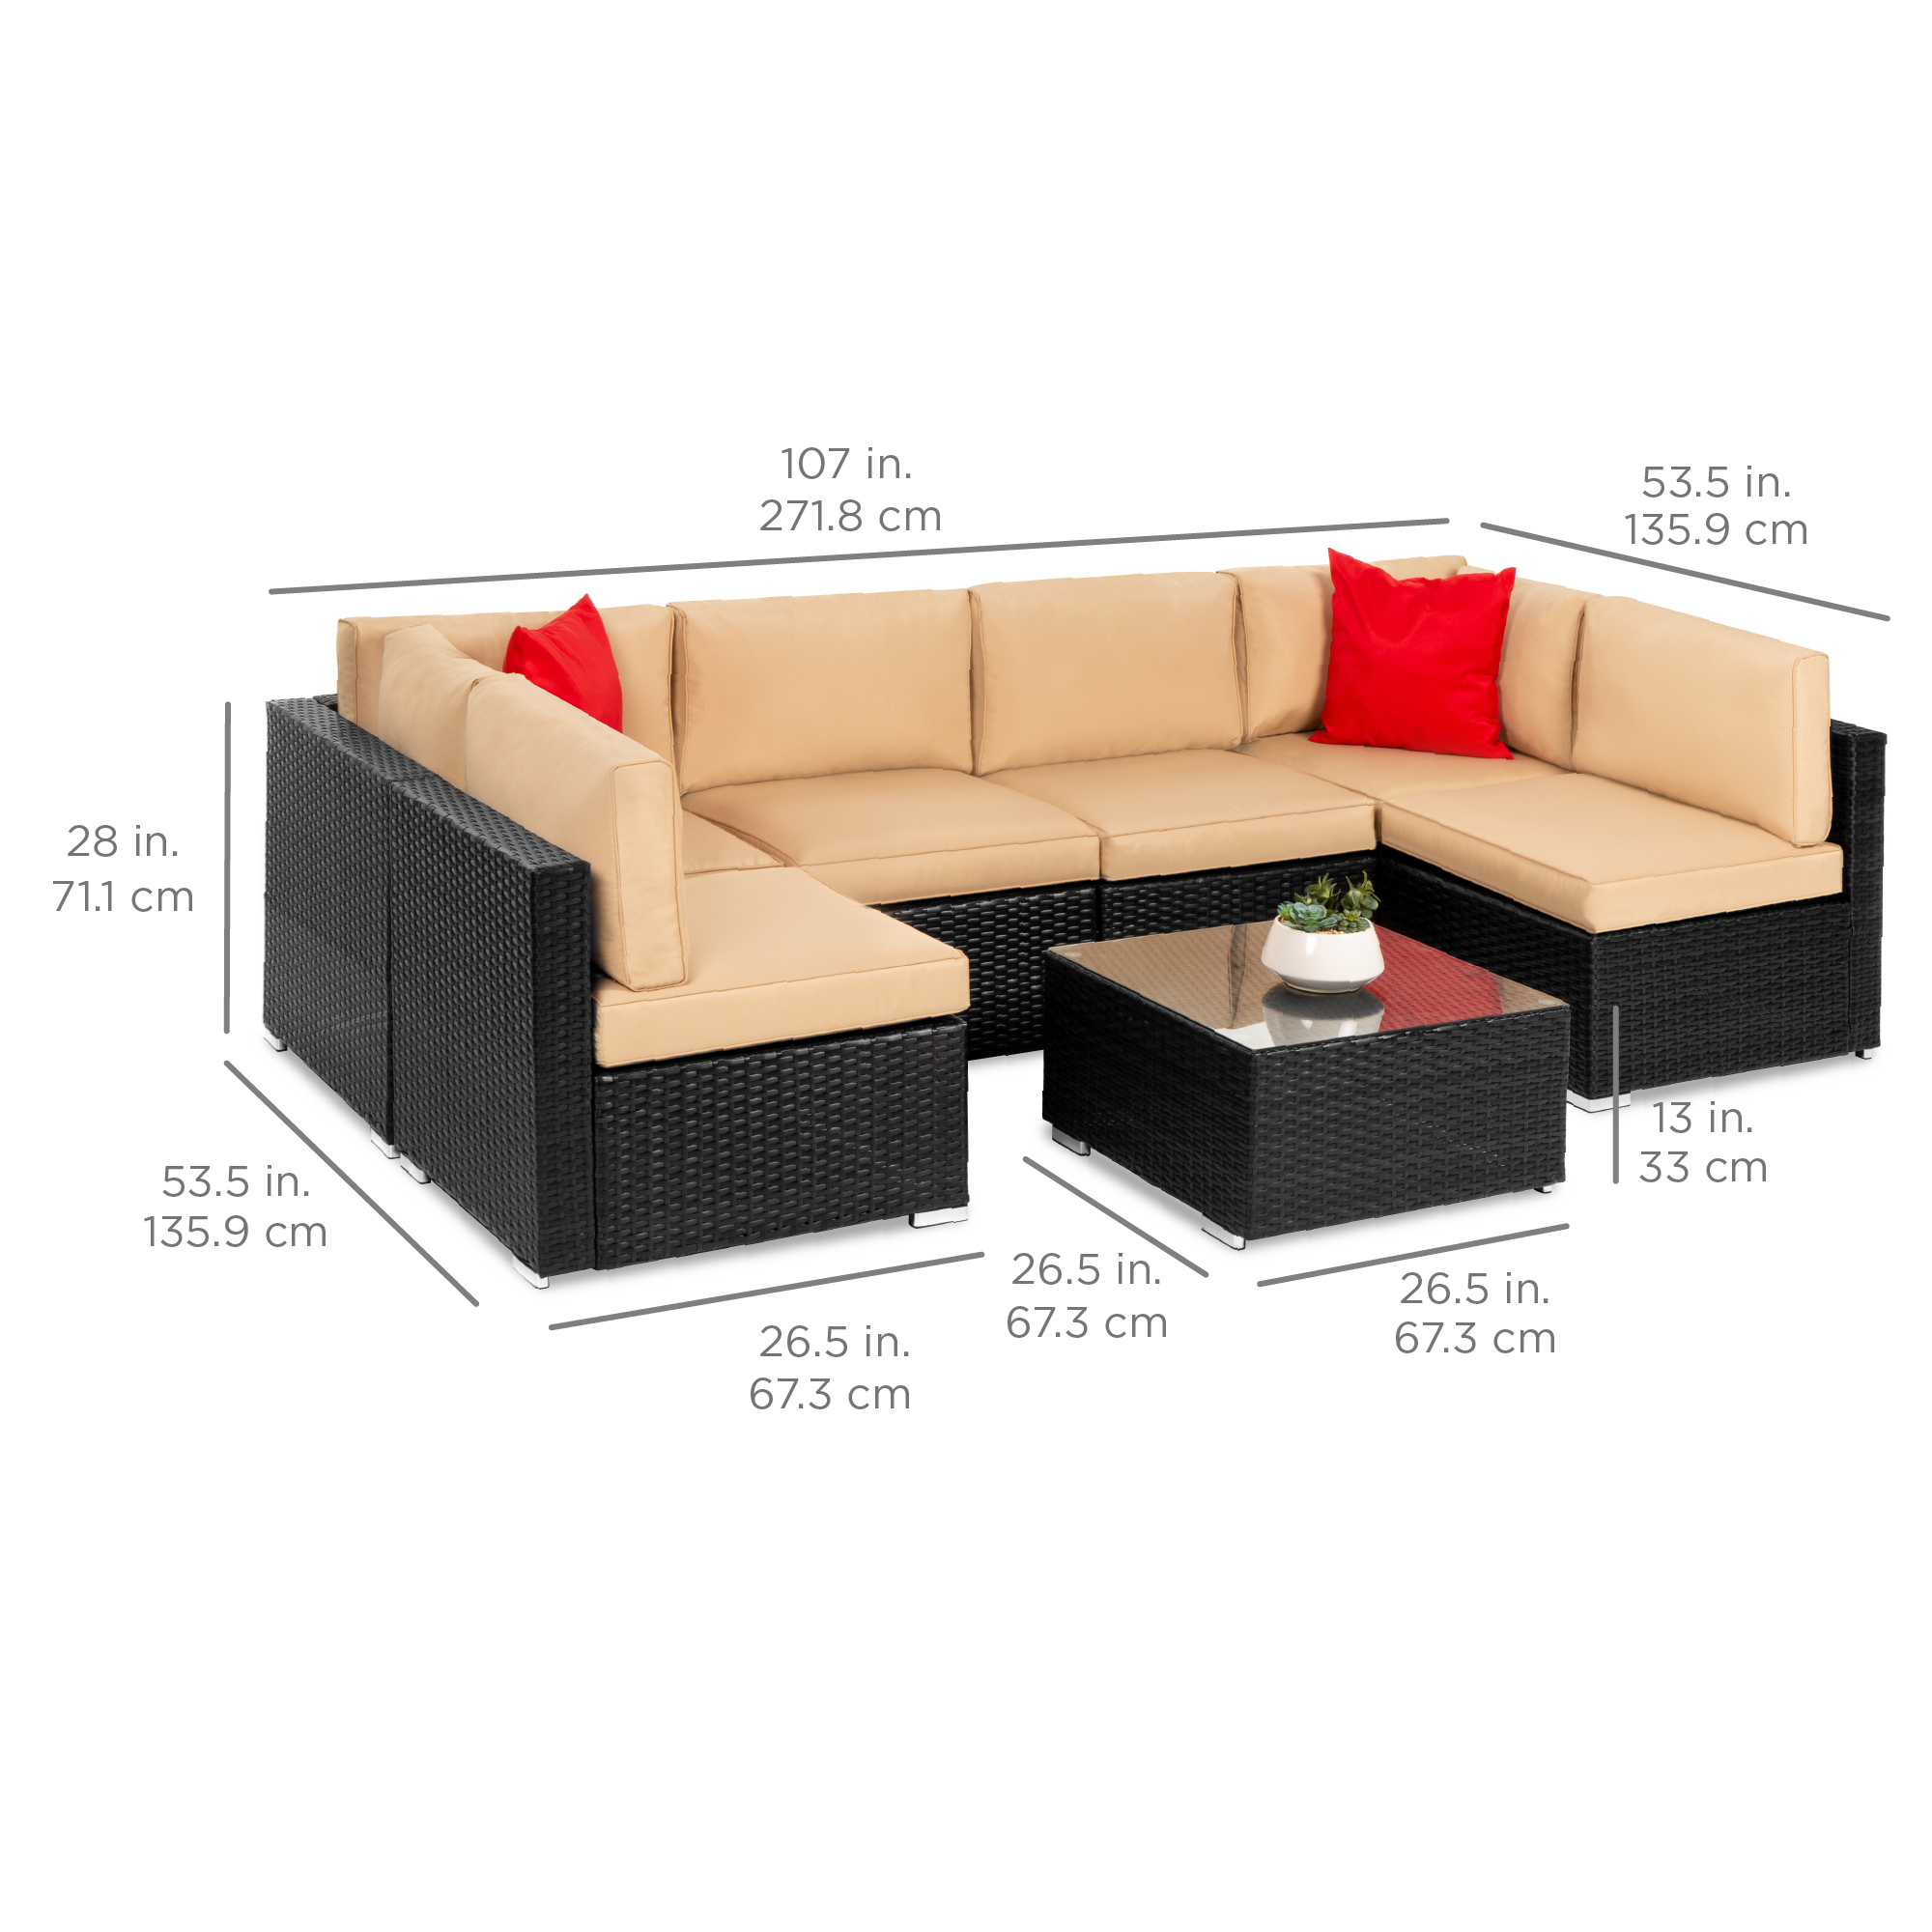 Best Choice Products 7 Piece Modular Outdoor Patio Furniture Set Wicker Sectional Sofas W Cover Seat Clips A Black Walmart Com Walmart Com